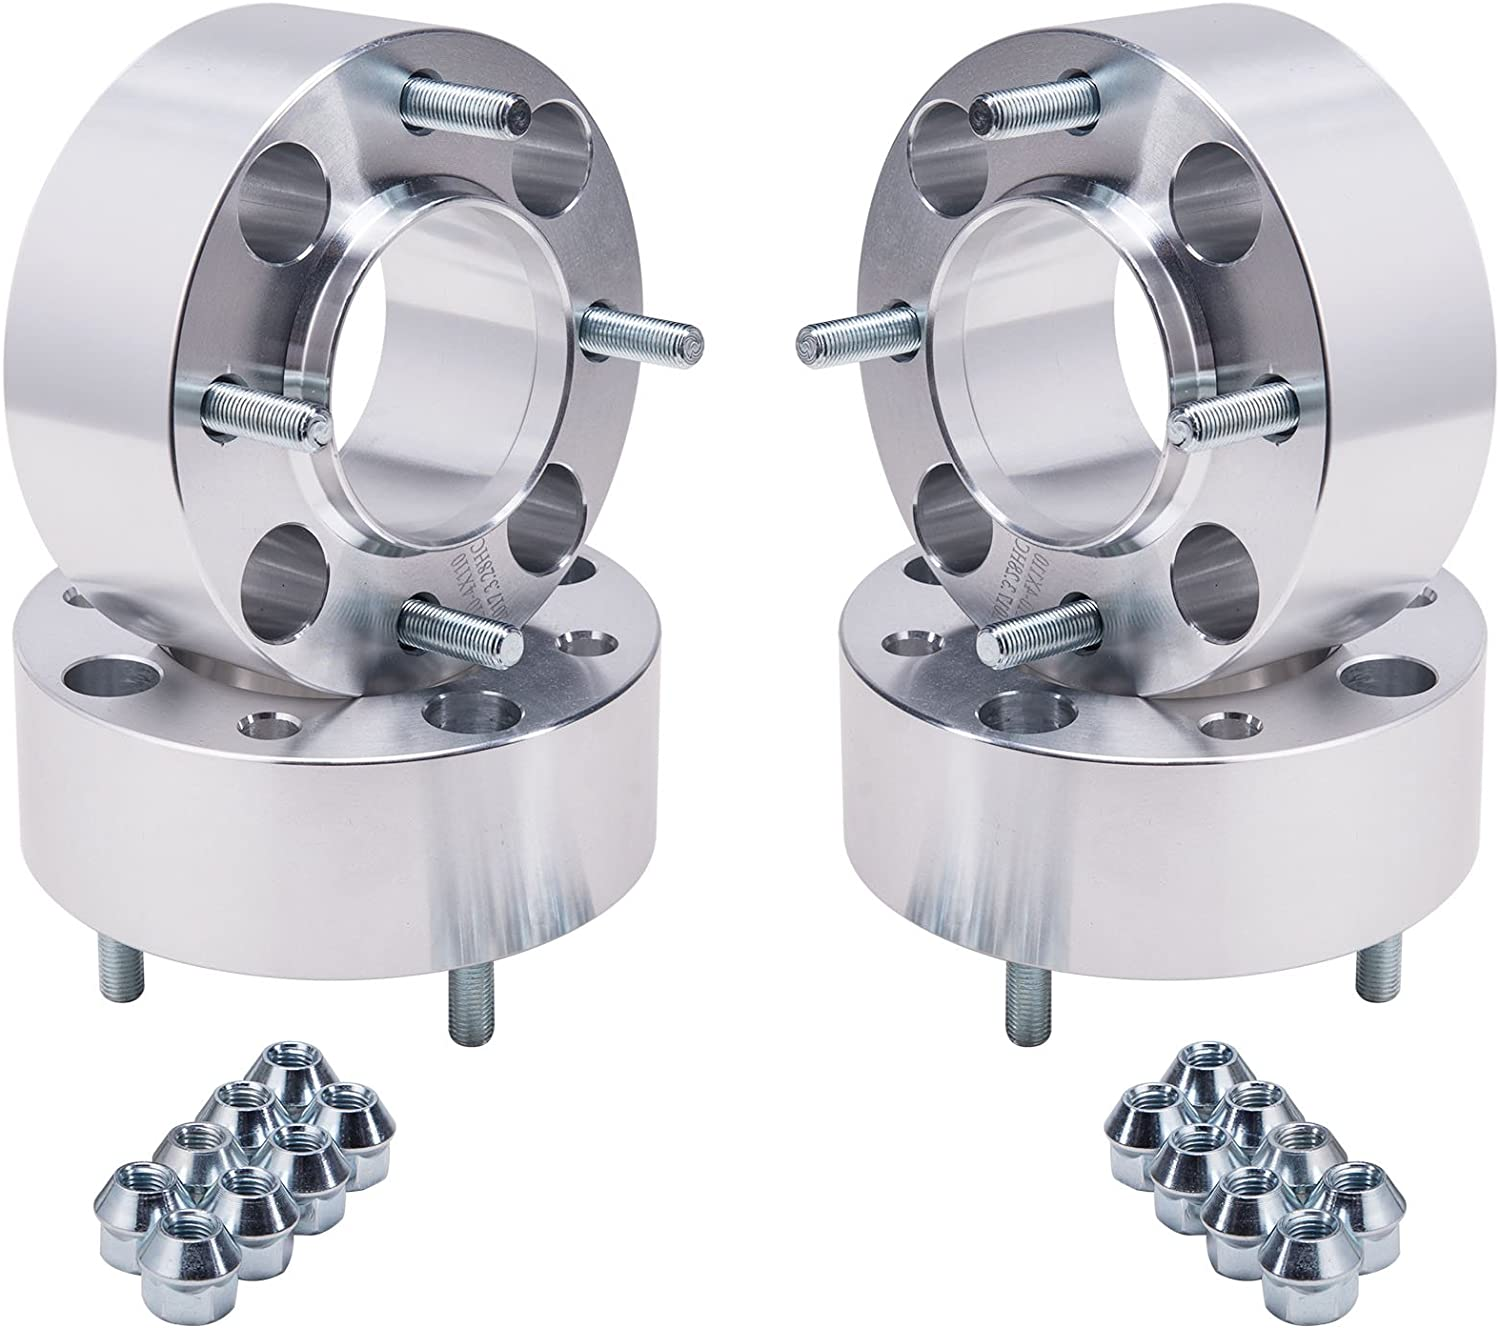 Honda Rancher At 400 2004-2007 Front Or Rear Wheel Spacers 4x110 1.5 inch Tire